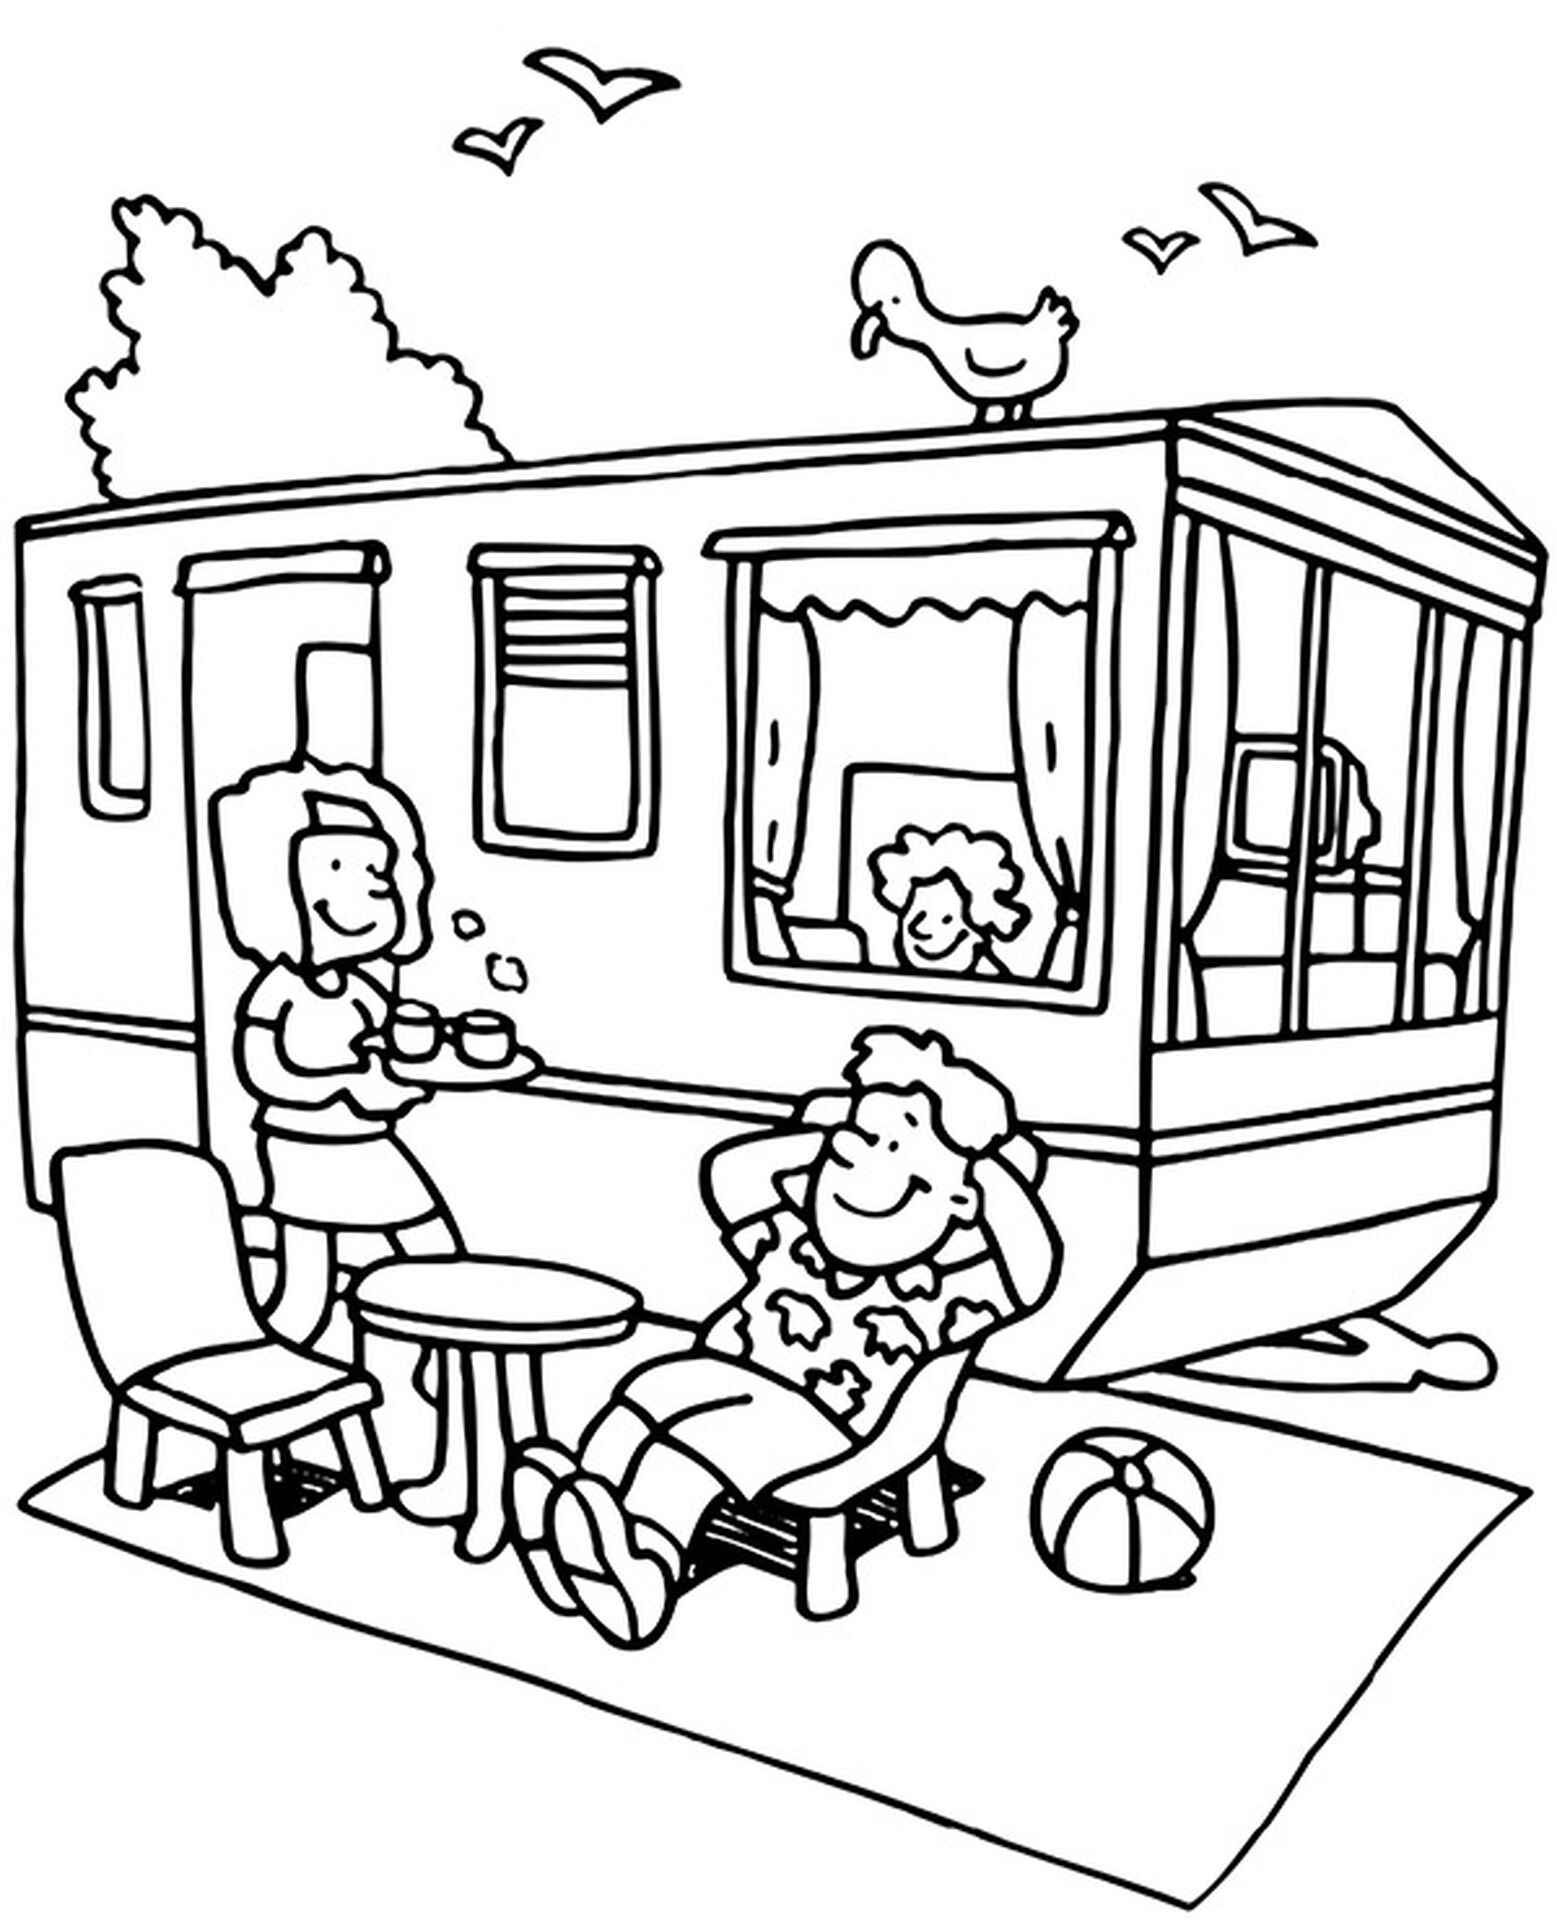 Summer Camping Coloring Picture